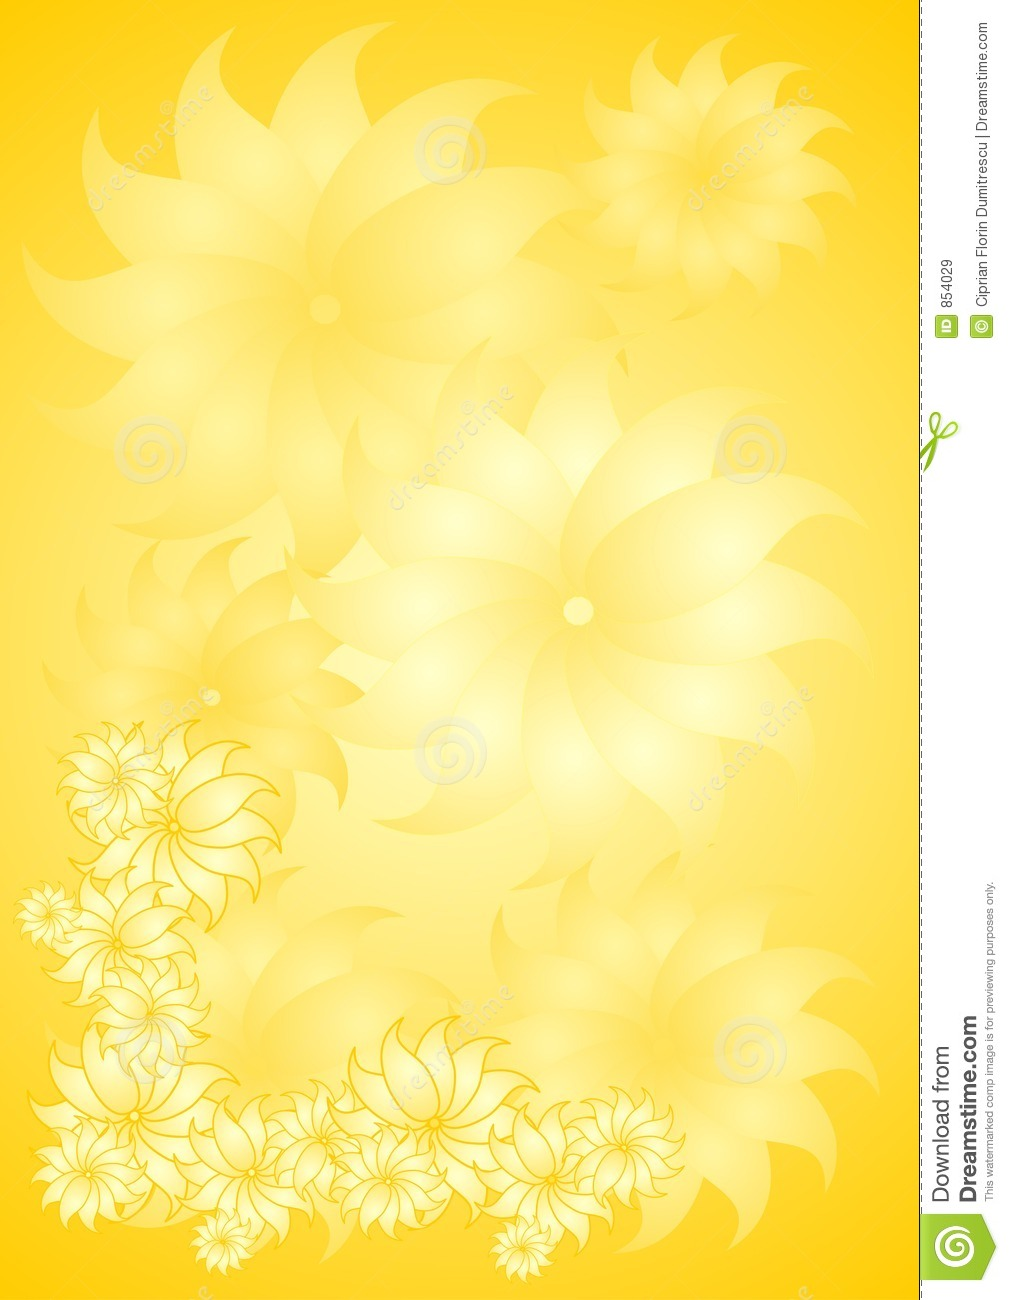 Yellow Floral Background Royalty Free Stock Images - Image: 854029